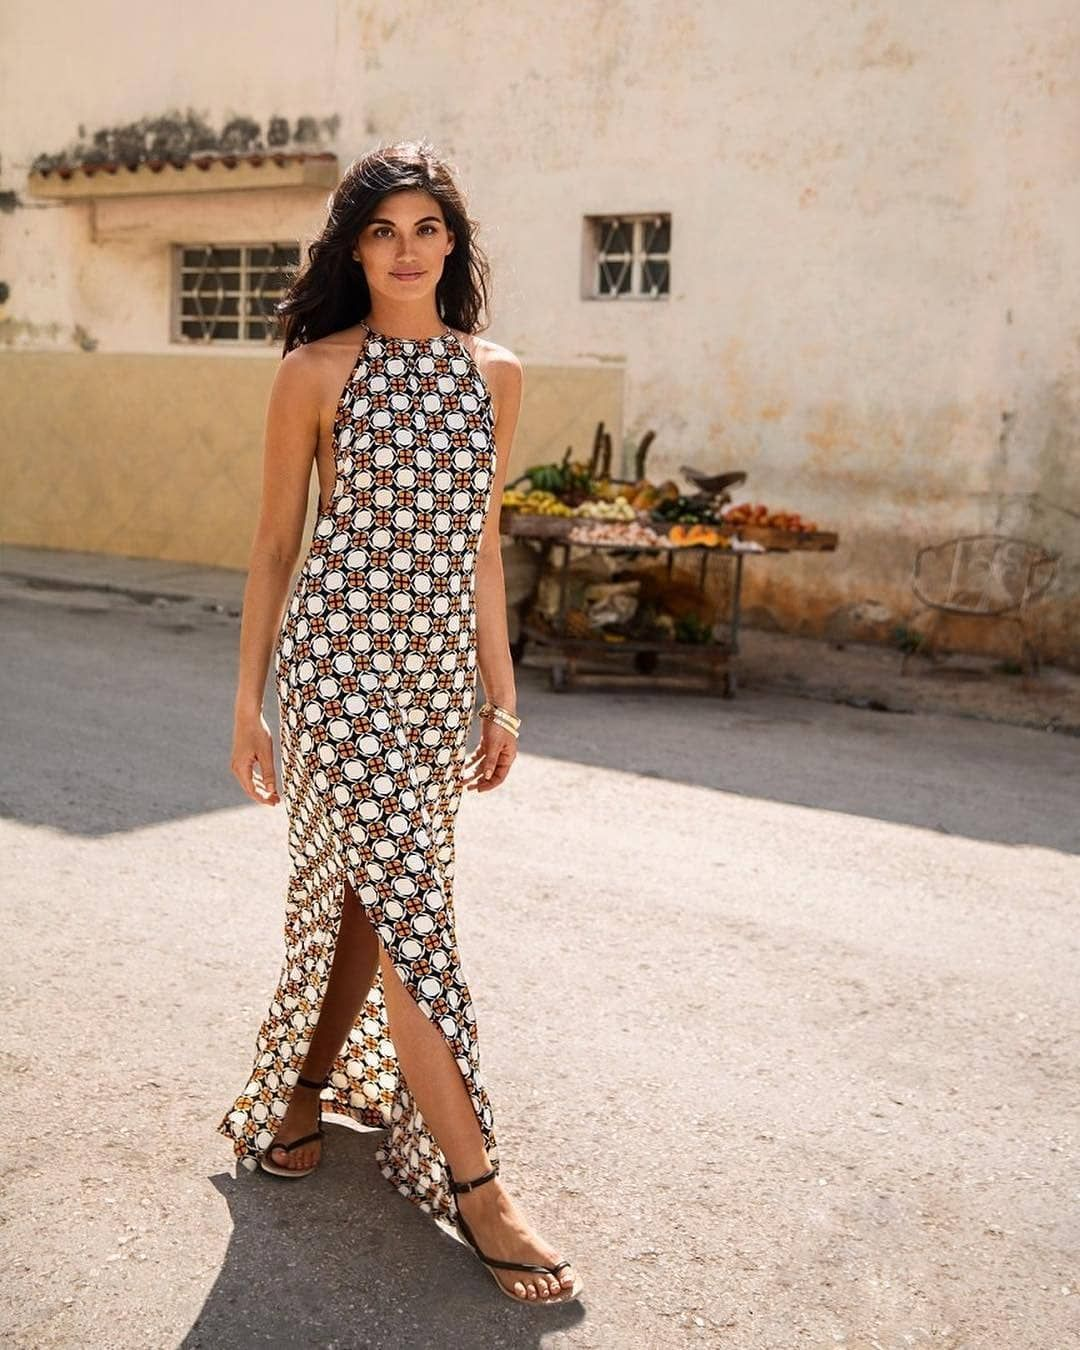 chic summer outfits best for you summer maxi dresses and bald